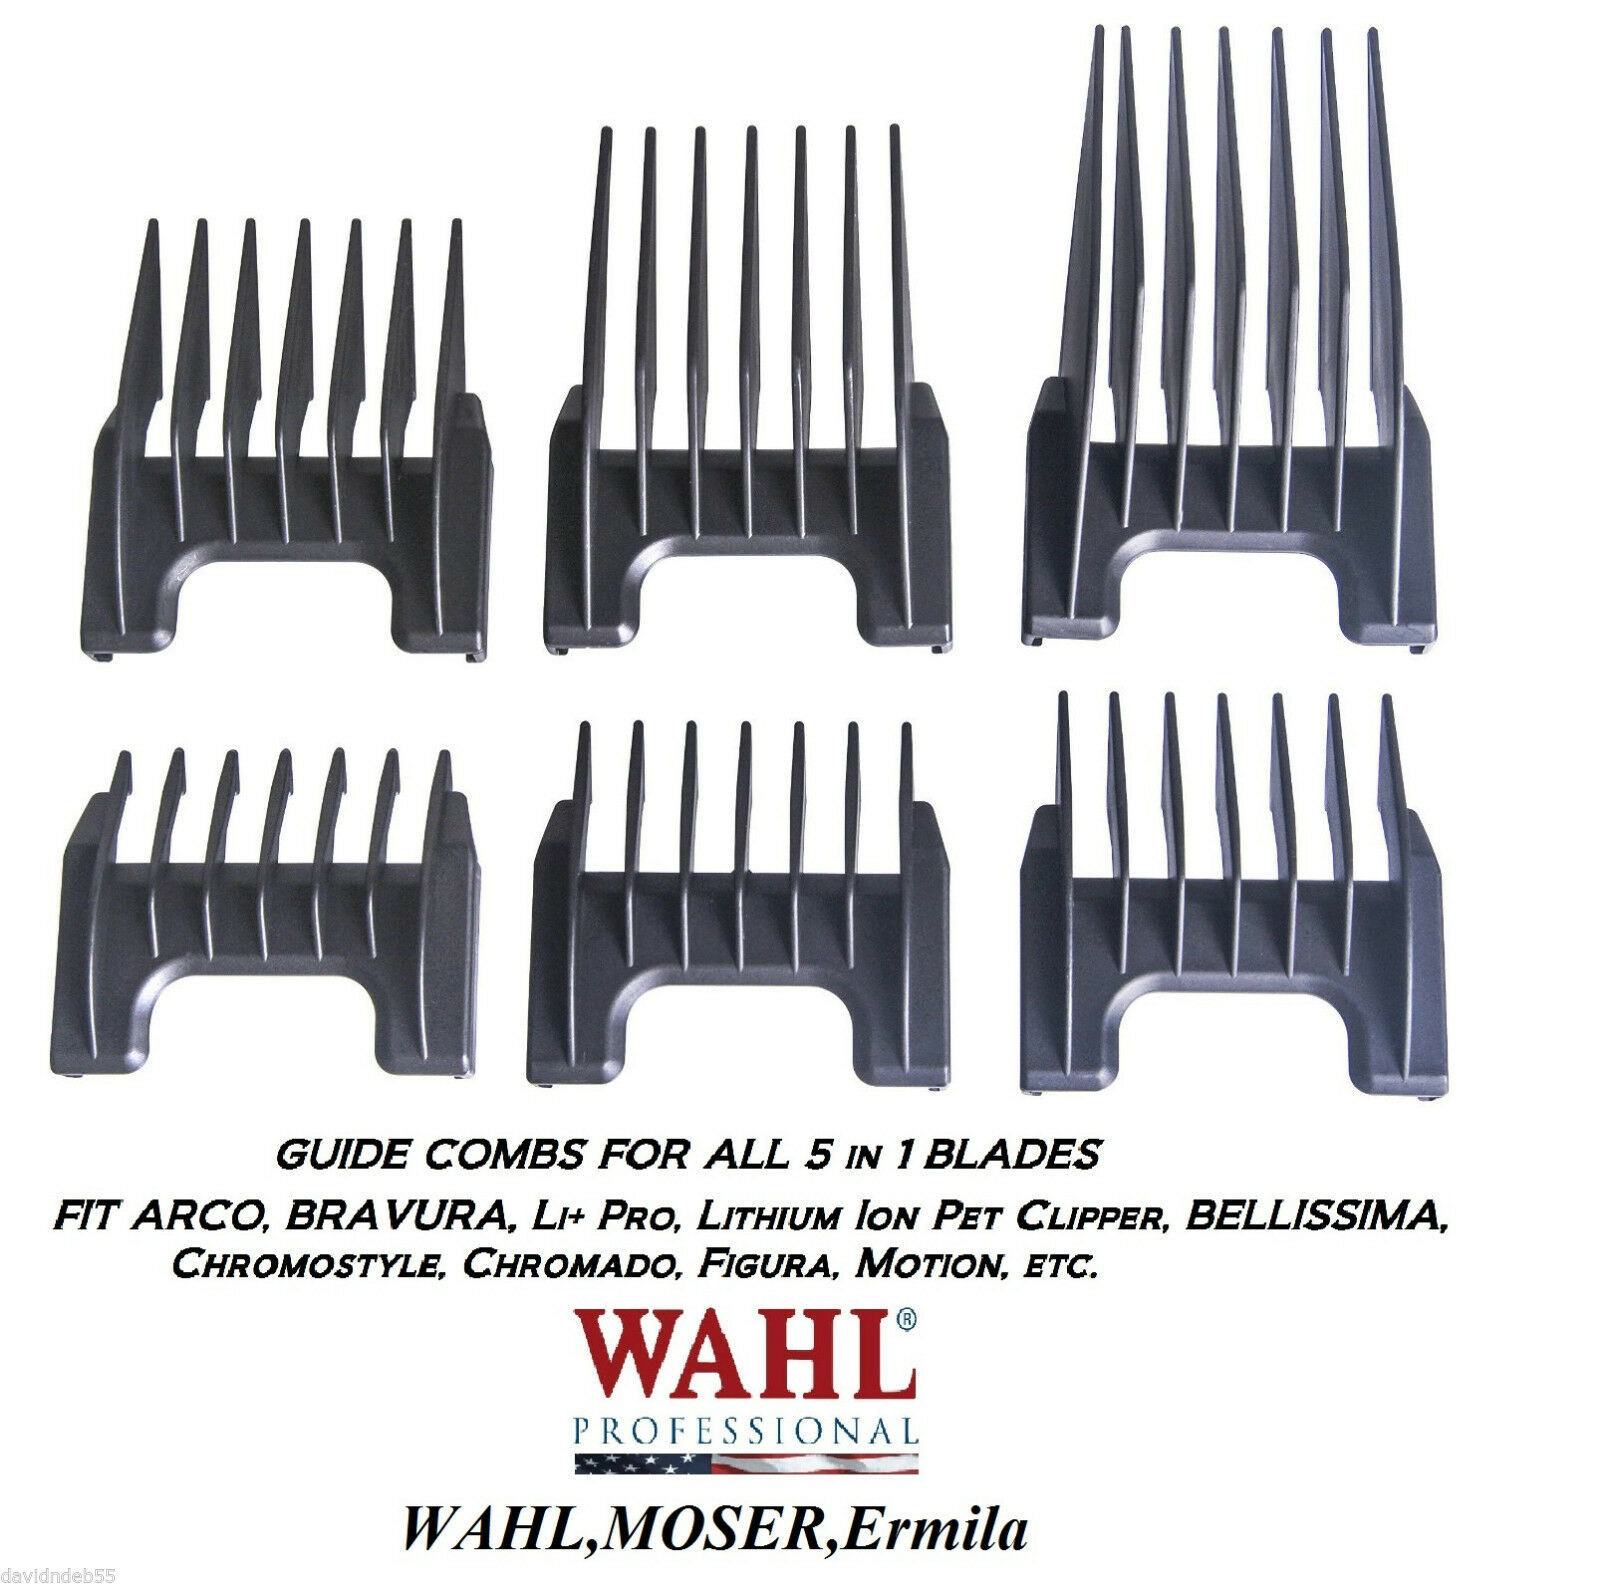 WAHL ATTACHMENT GUIDE COMB For ChromStyle,BRAVURA 5 in 1 Adjustable Blade 5in1 - $9.99 - $14.99